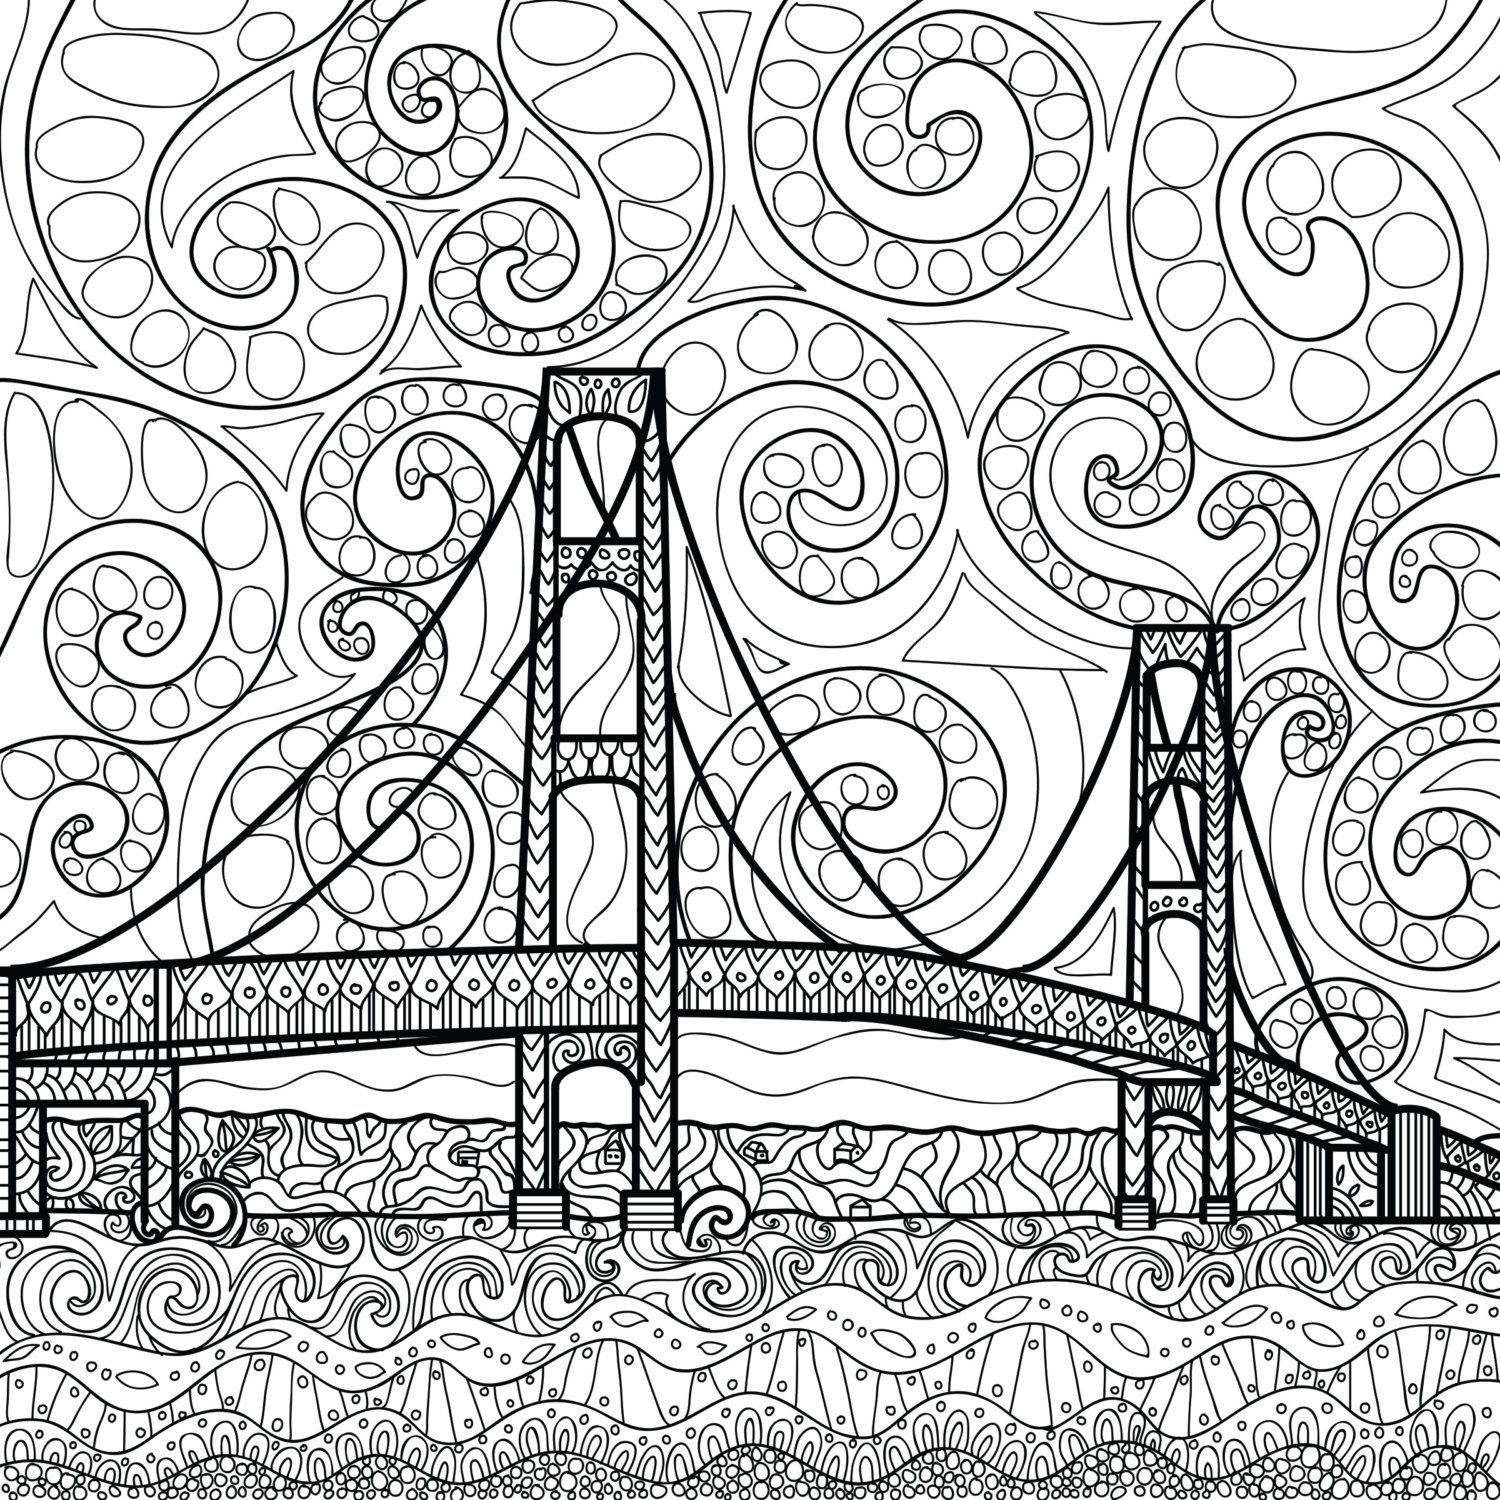 Printable coloring pages zentangle - Printable Coloring Page Zentangle Mackinac Island Coloring Book